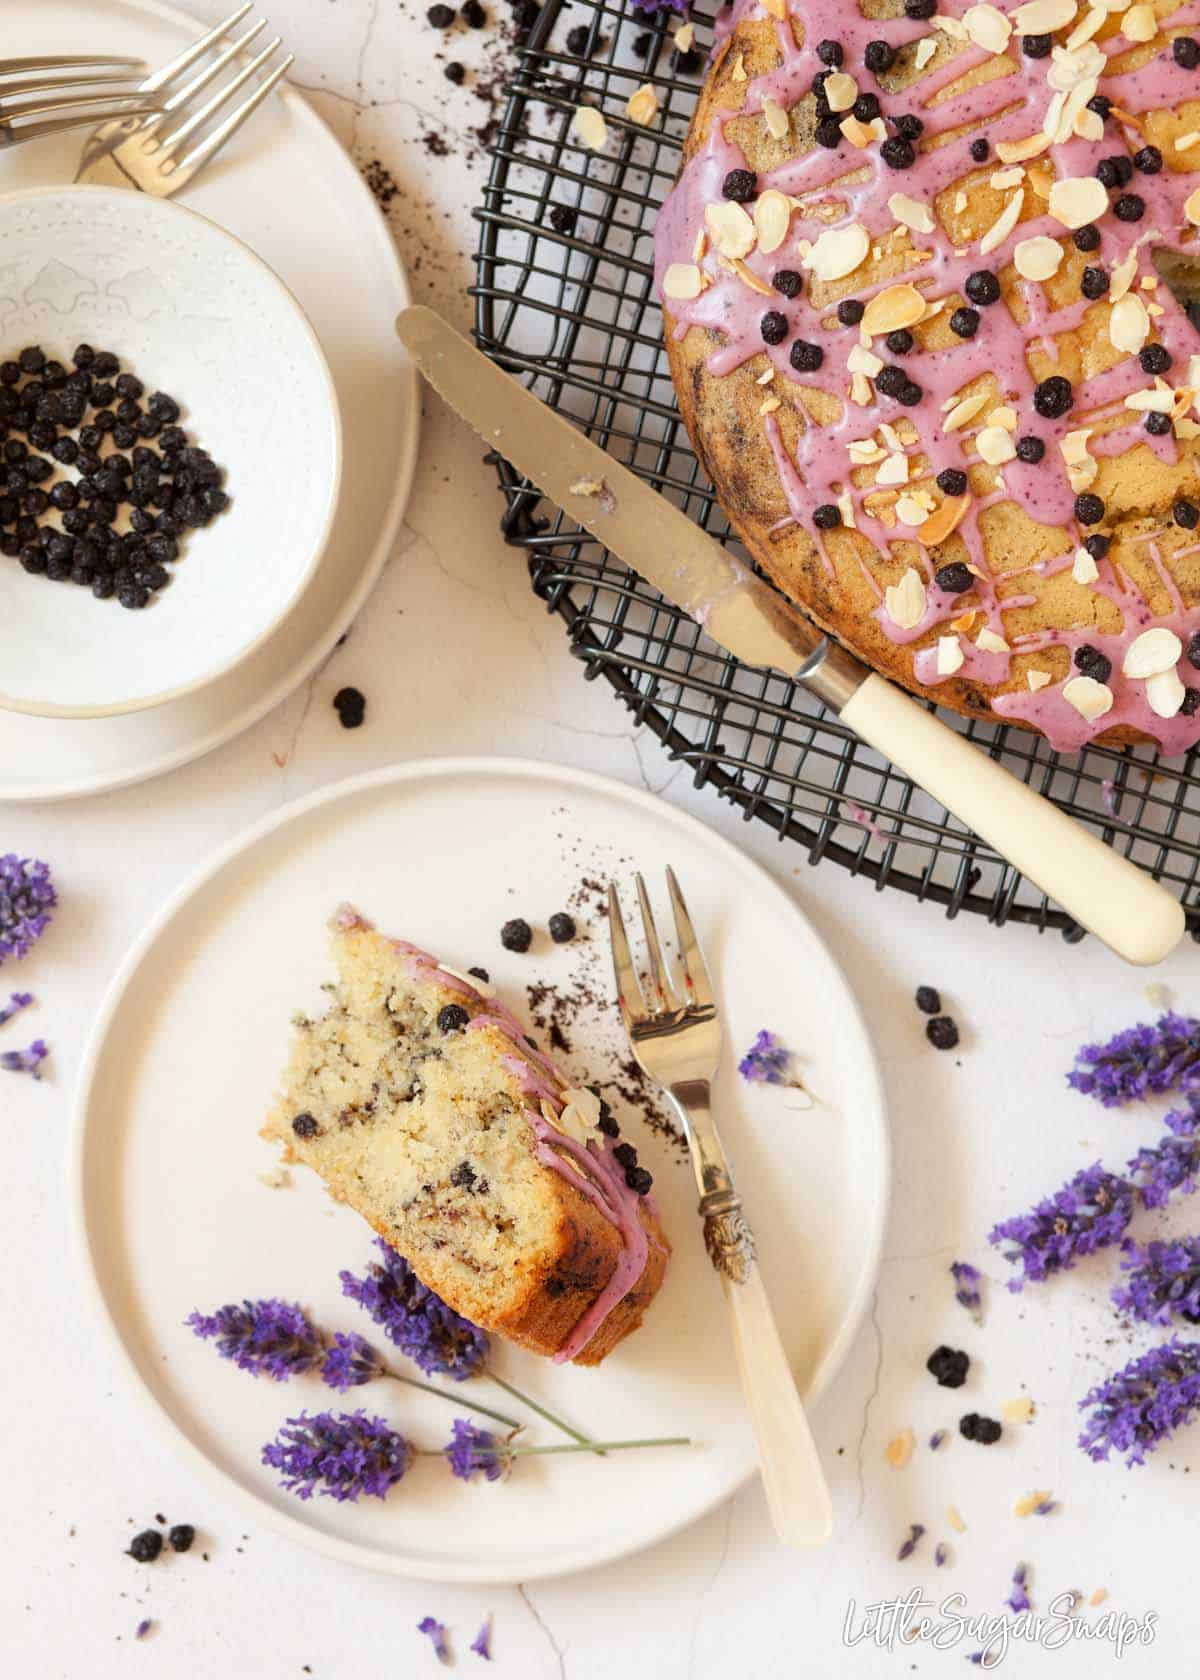 A slice of eggless blueberry cake on a plate with fresh lavender